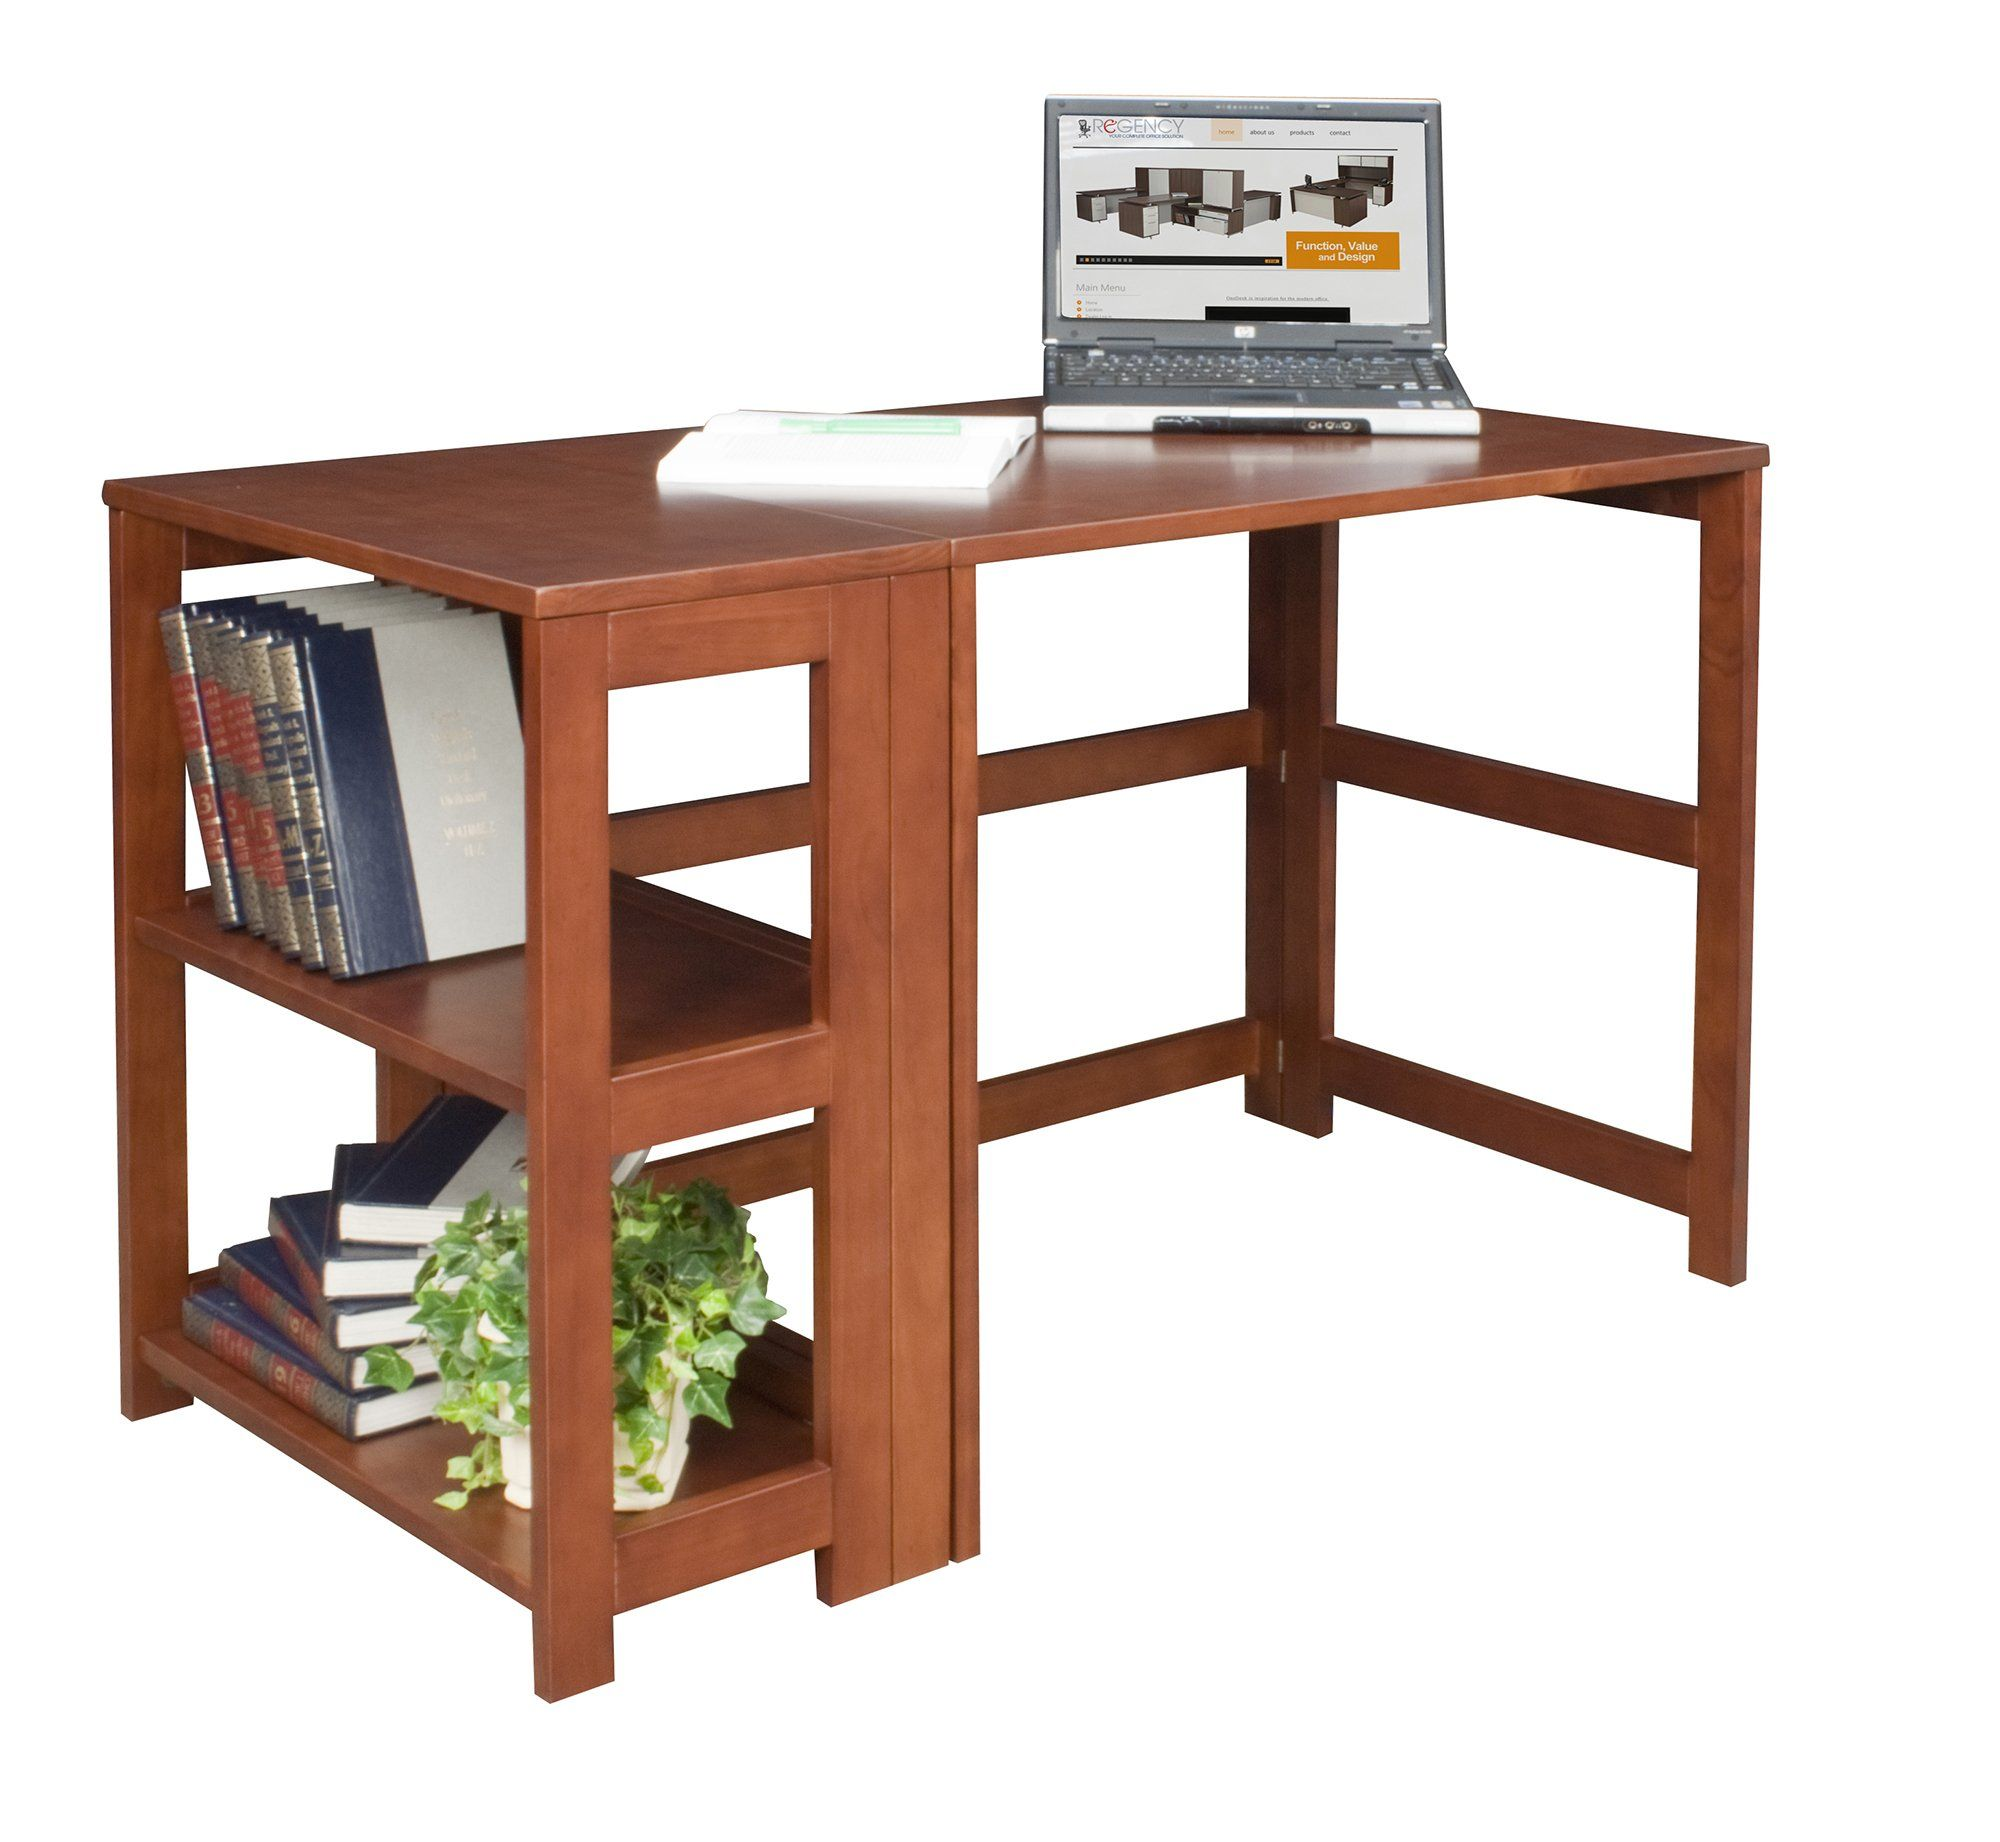 oak chic writing in office mission desk amazon corner your and vs leick computer inspiration residence